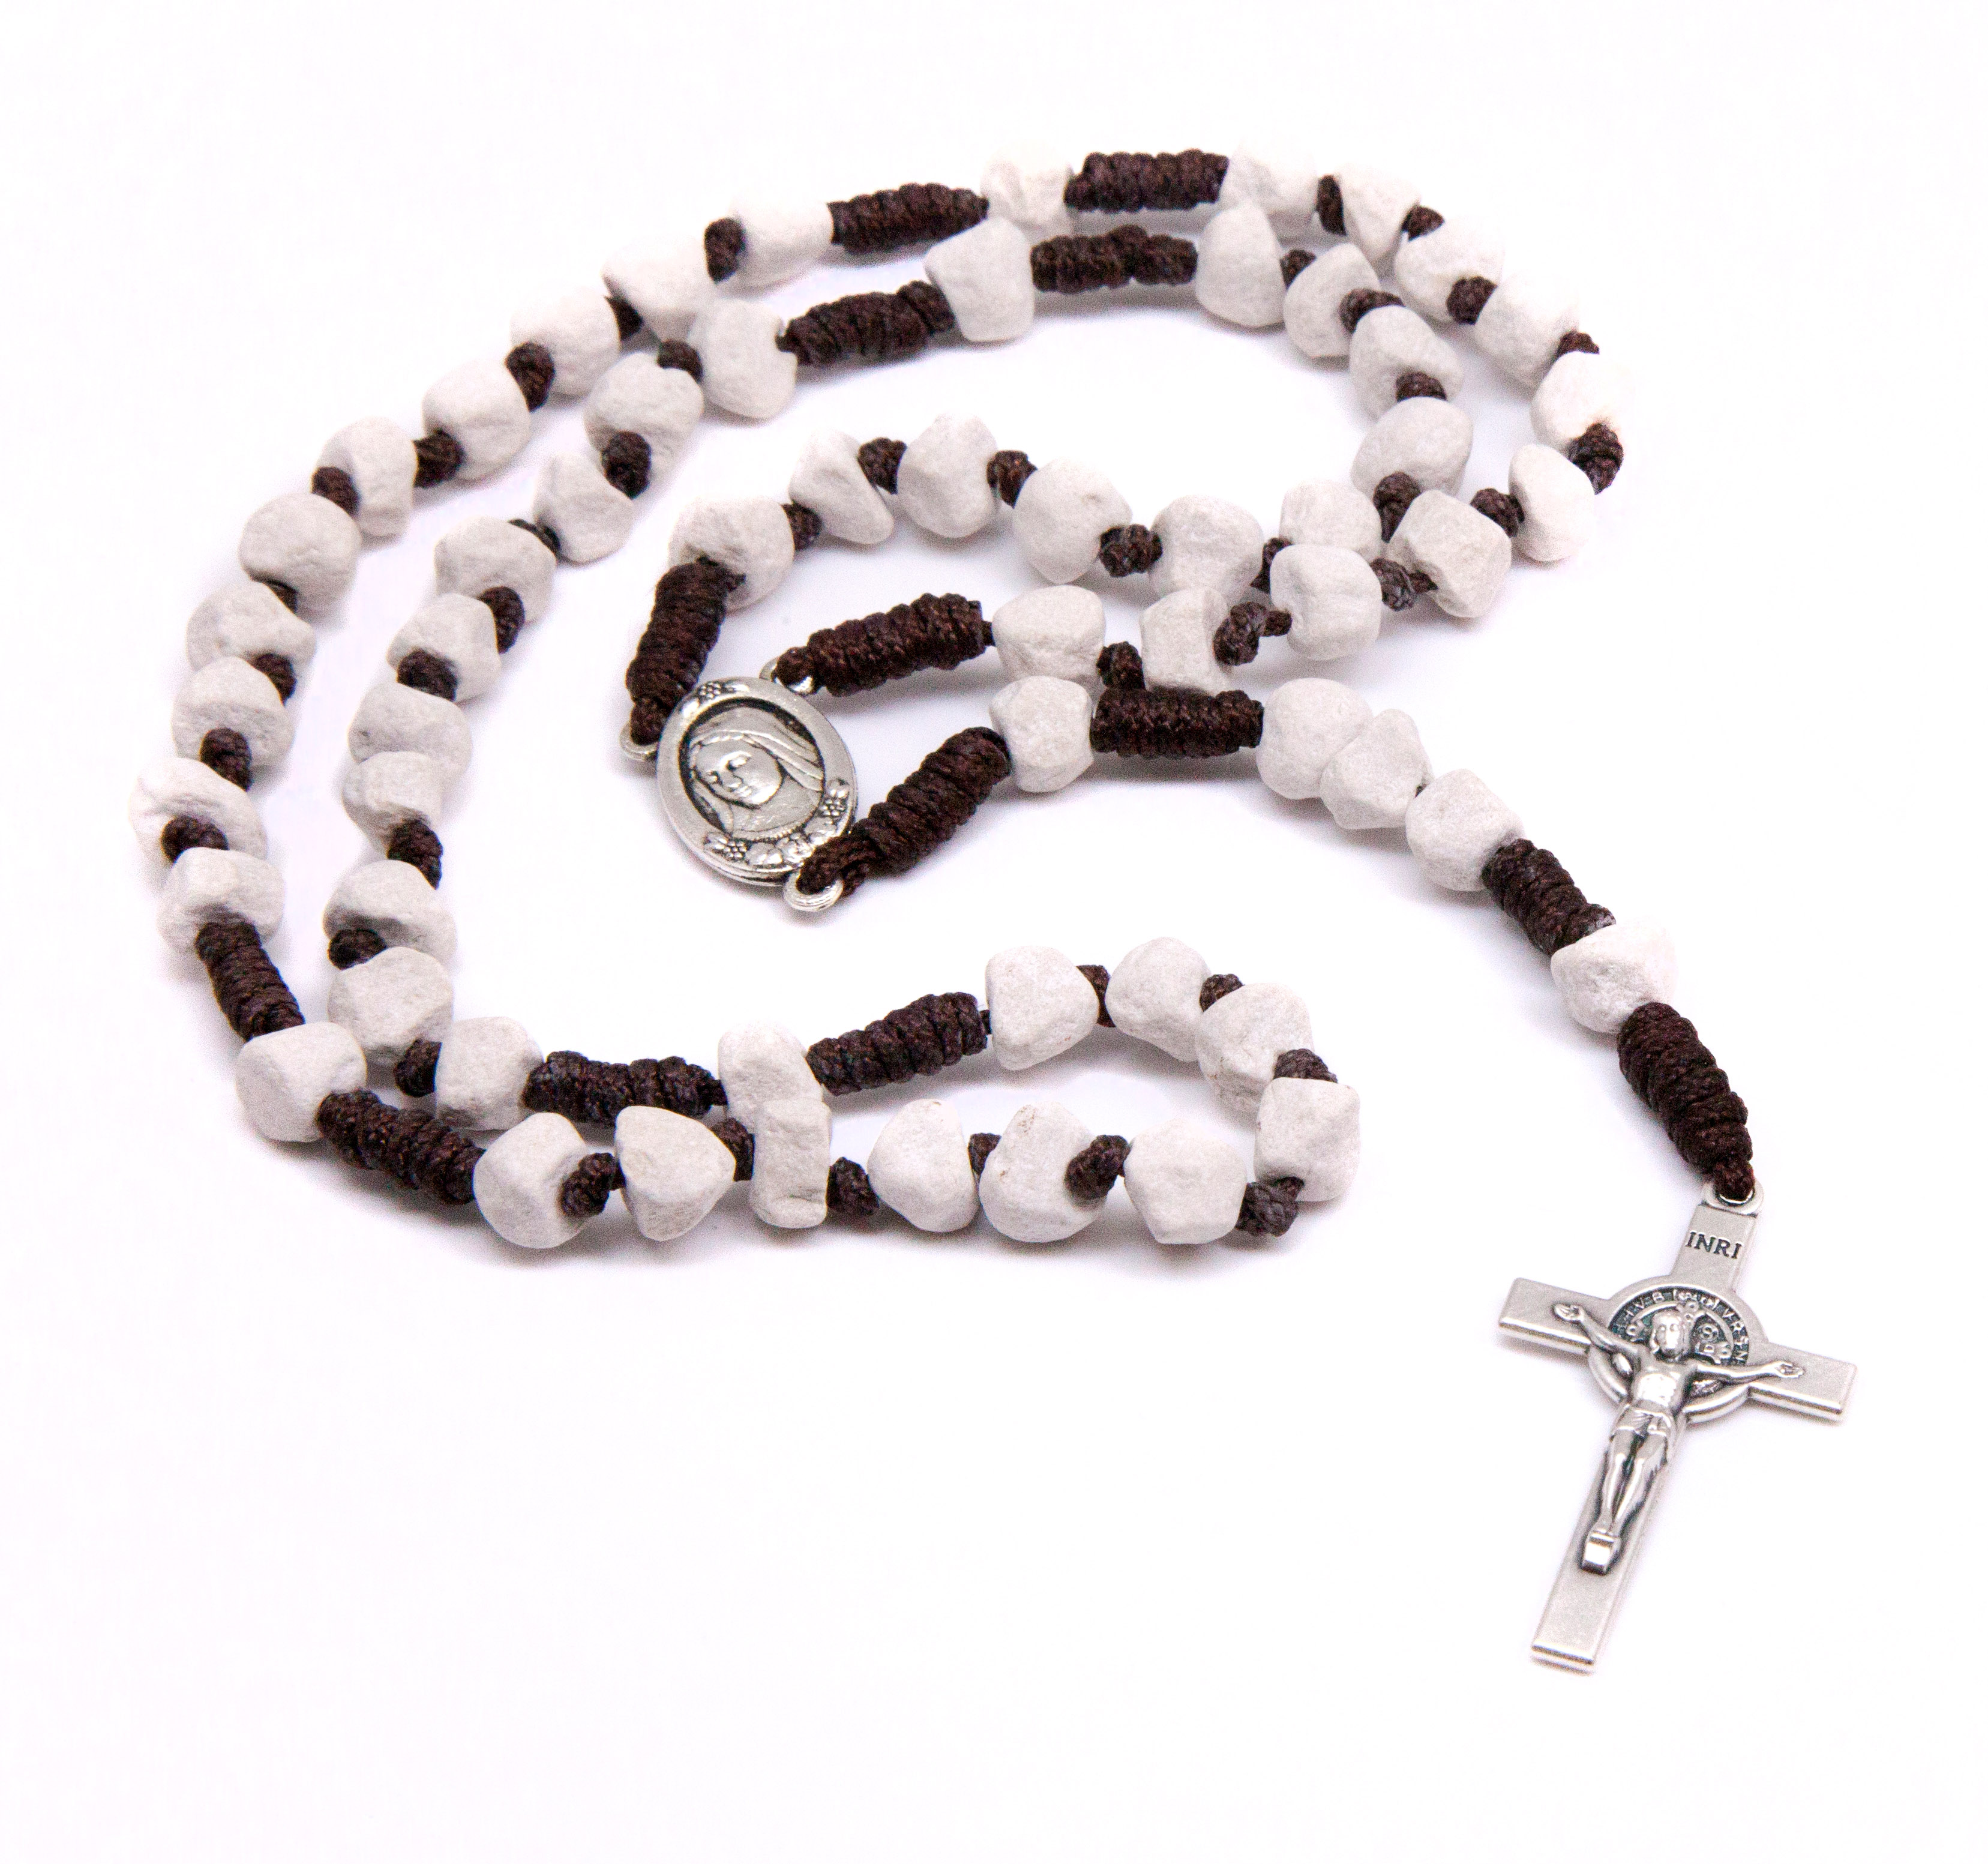 Medjugorje Stone Rosary - Brown Cord